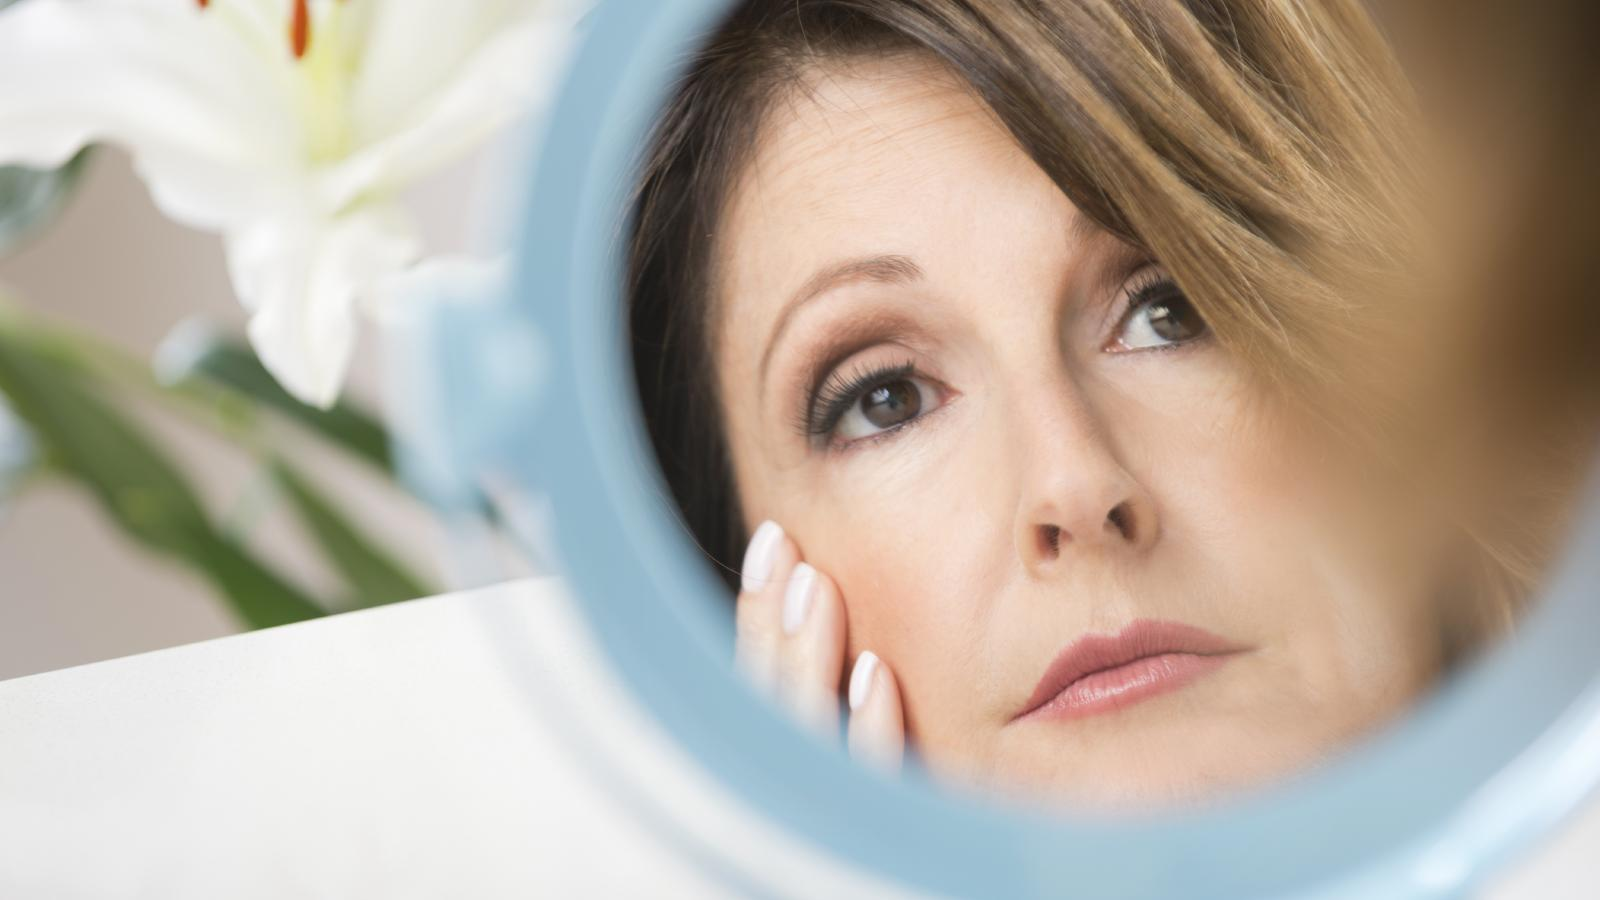 Worried woman looking at her skin in the mirror